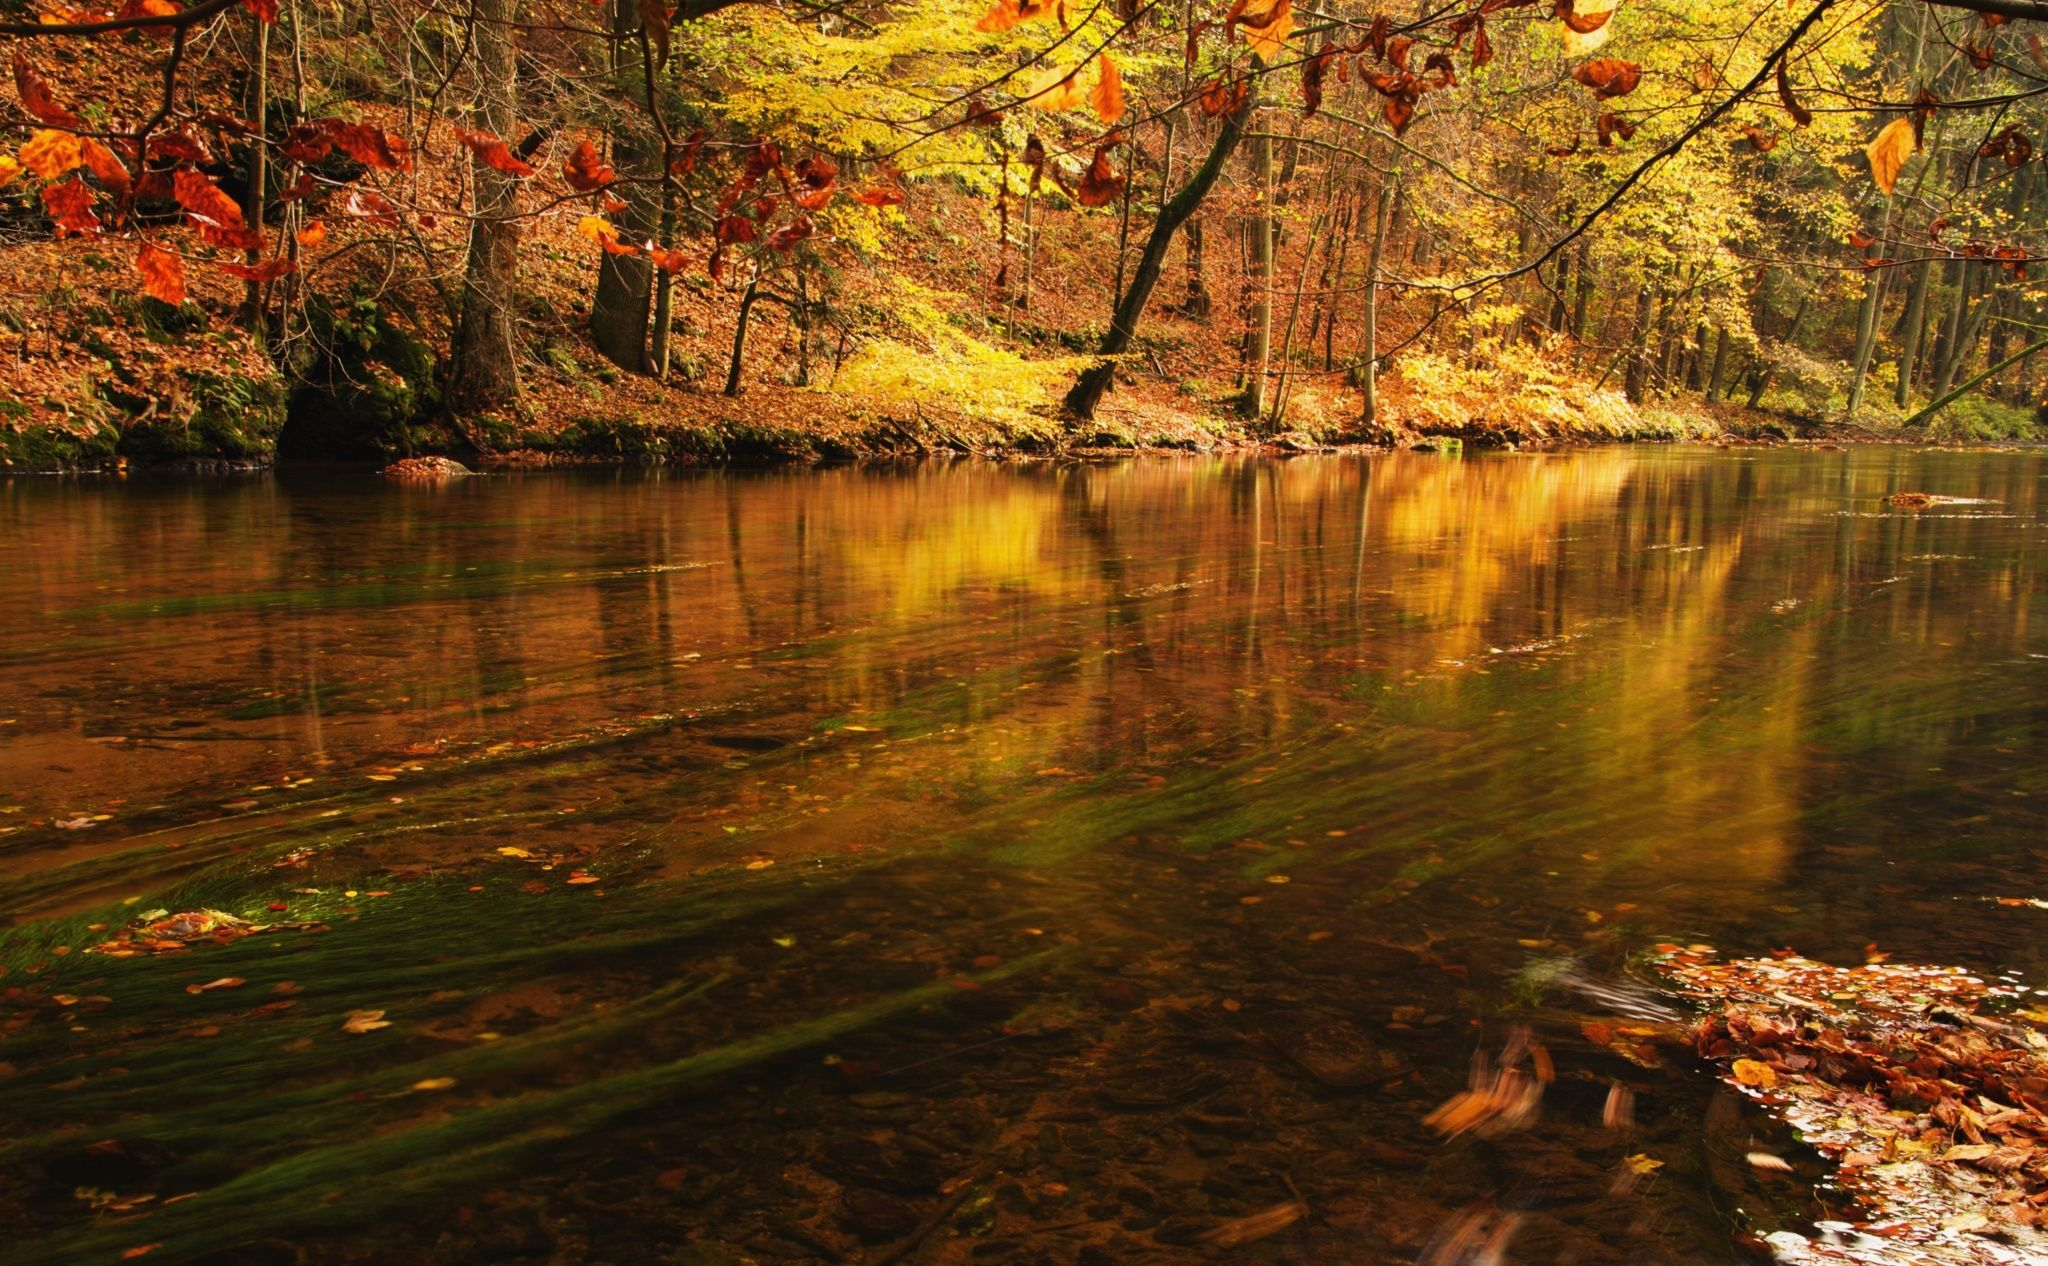 Colored River By Miloslav Janovsky 500px Autumn Trees Country Roads River Wallpaper autumn road rays alley trees